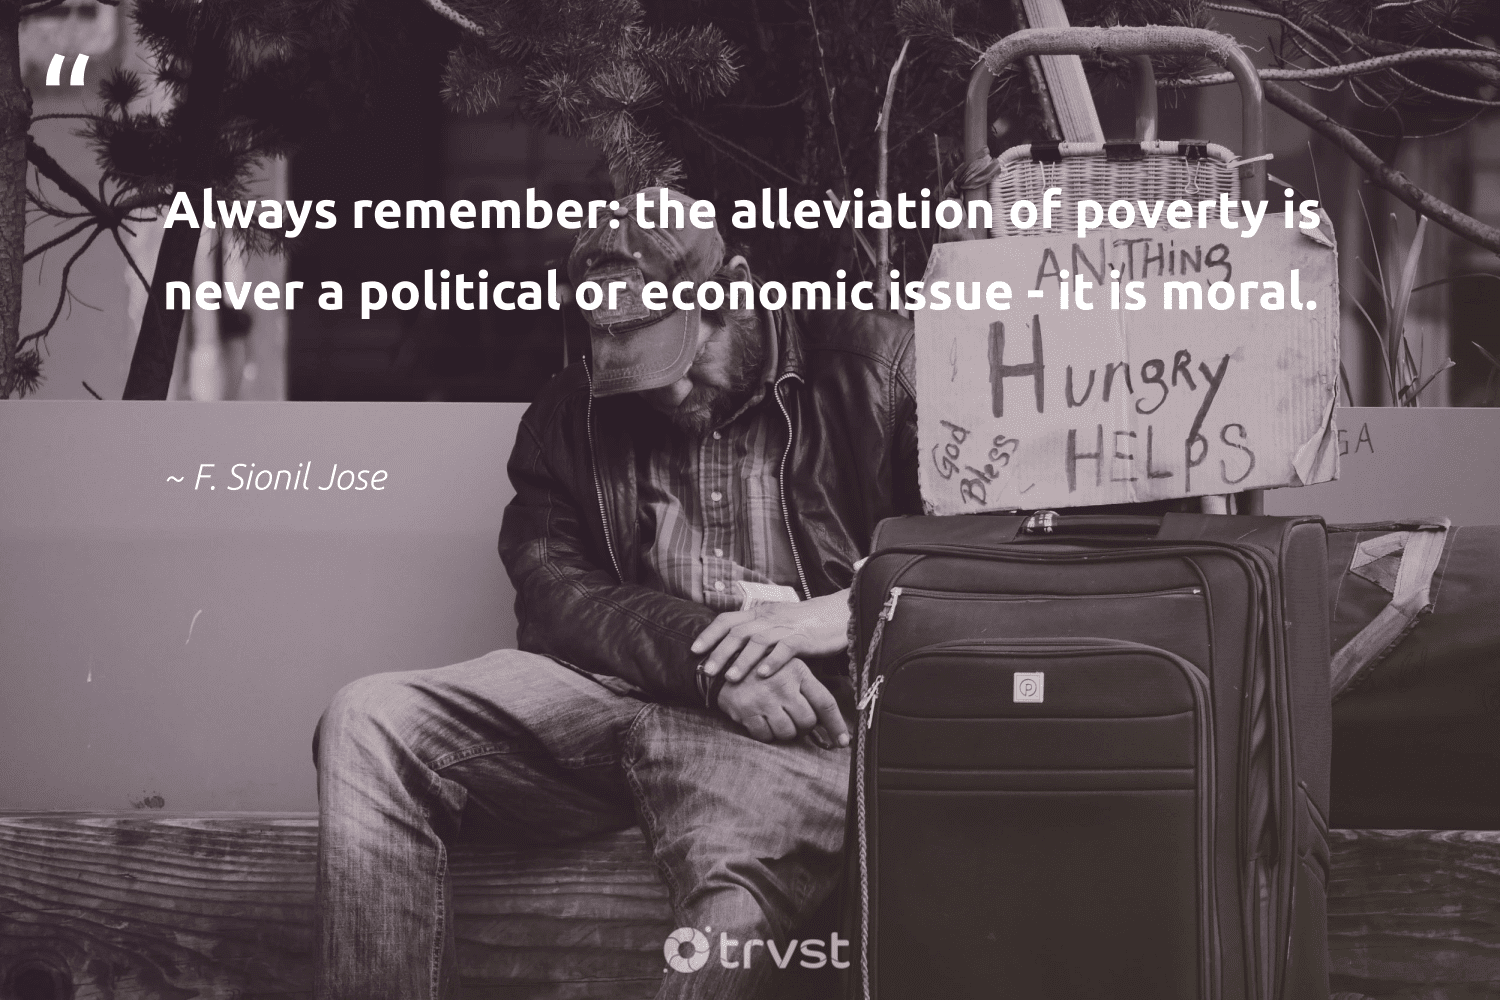 """""""Always remember: the alleviation of poverty is never a political or economic issue - it is moral.""""  - F. Sionil Jose #trvst #quotes #poverty #endpoverty #equalrights #makeadifference #impact #inclusion #equalopportunity #bethechange #weareallone #sustainablefutures"""